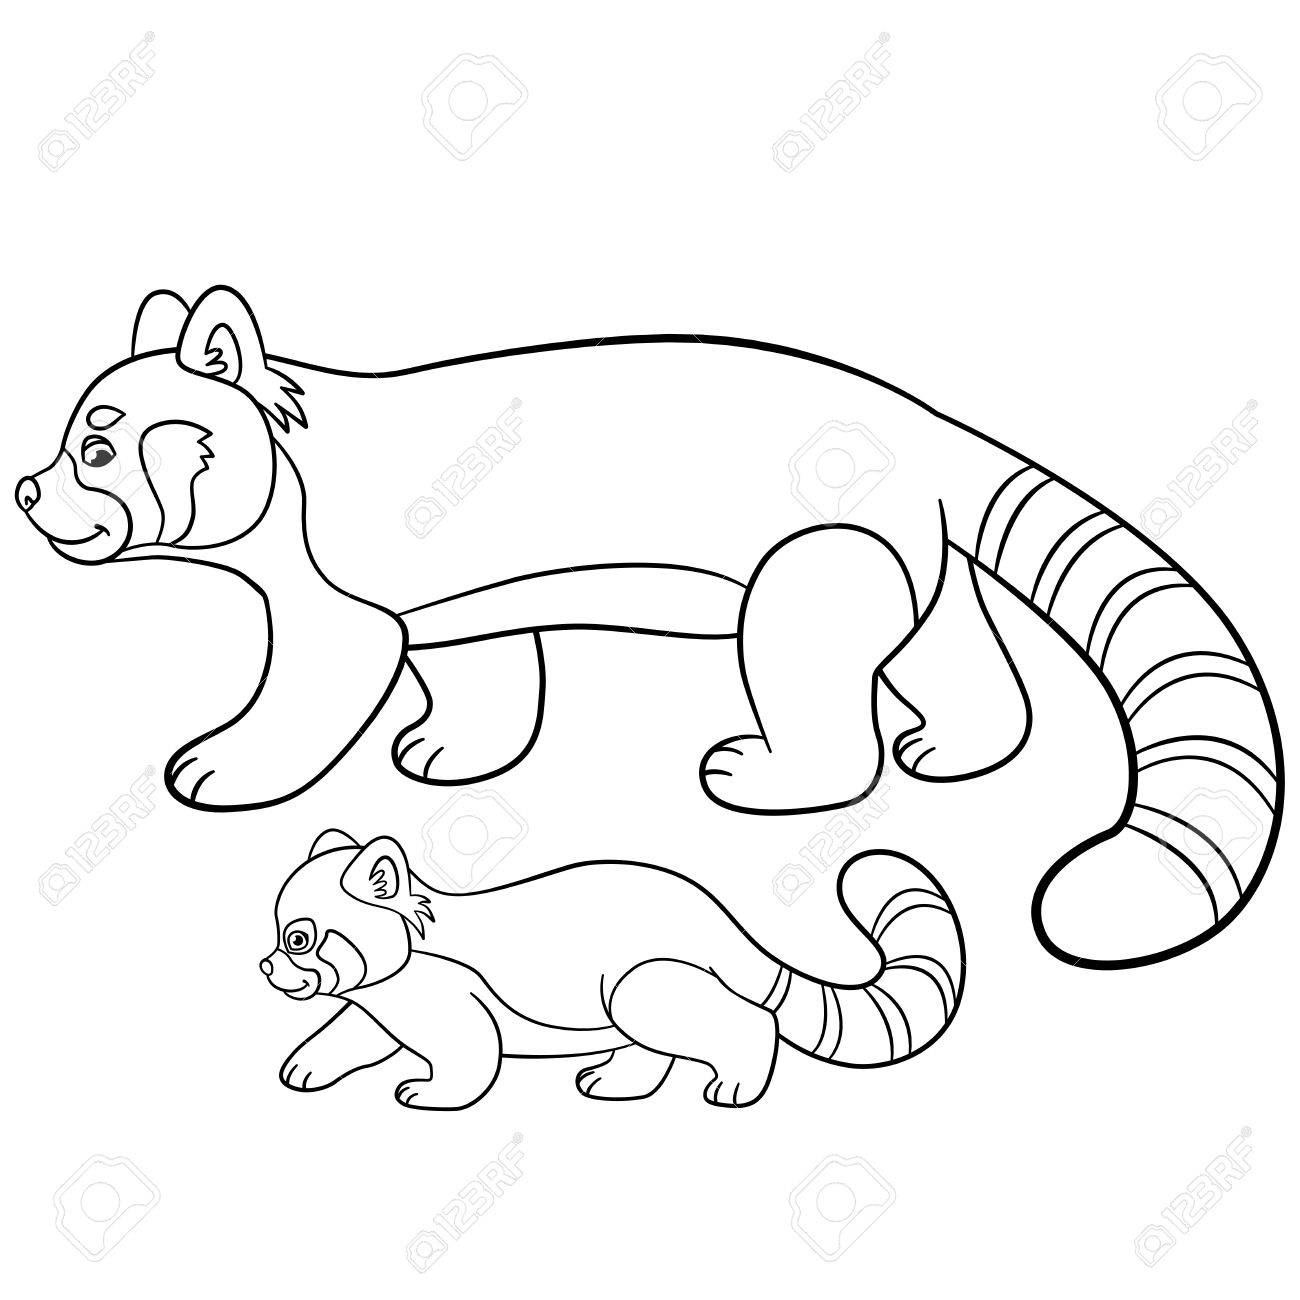 cute baby panda coloring pages | Panda coloring pages, Bird ... | 1300x1300